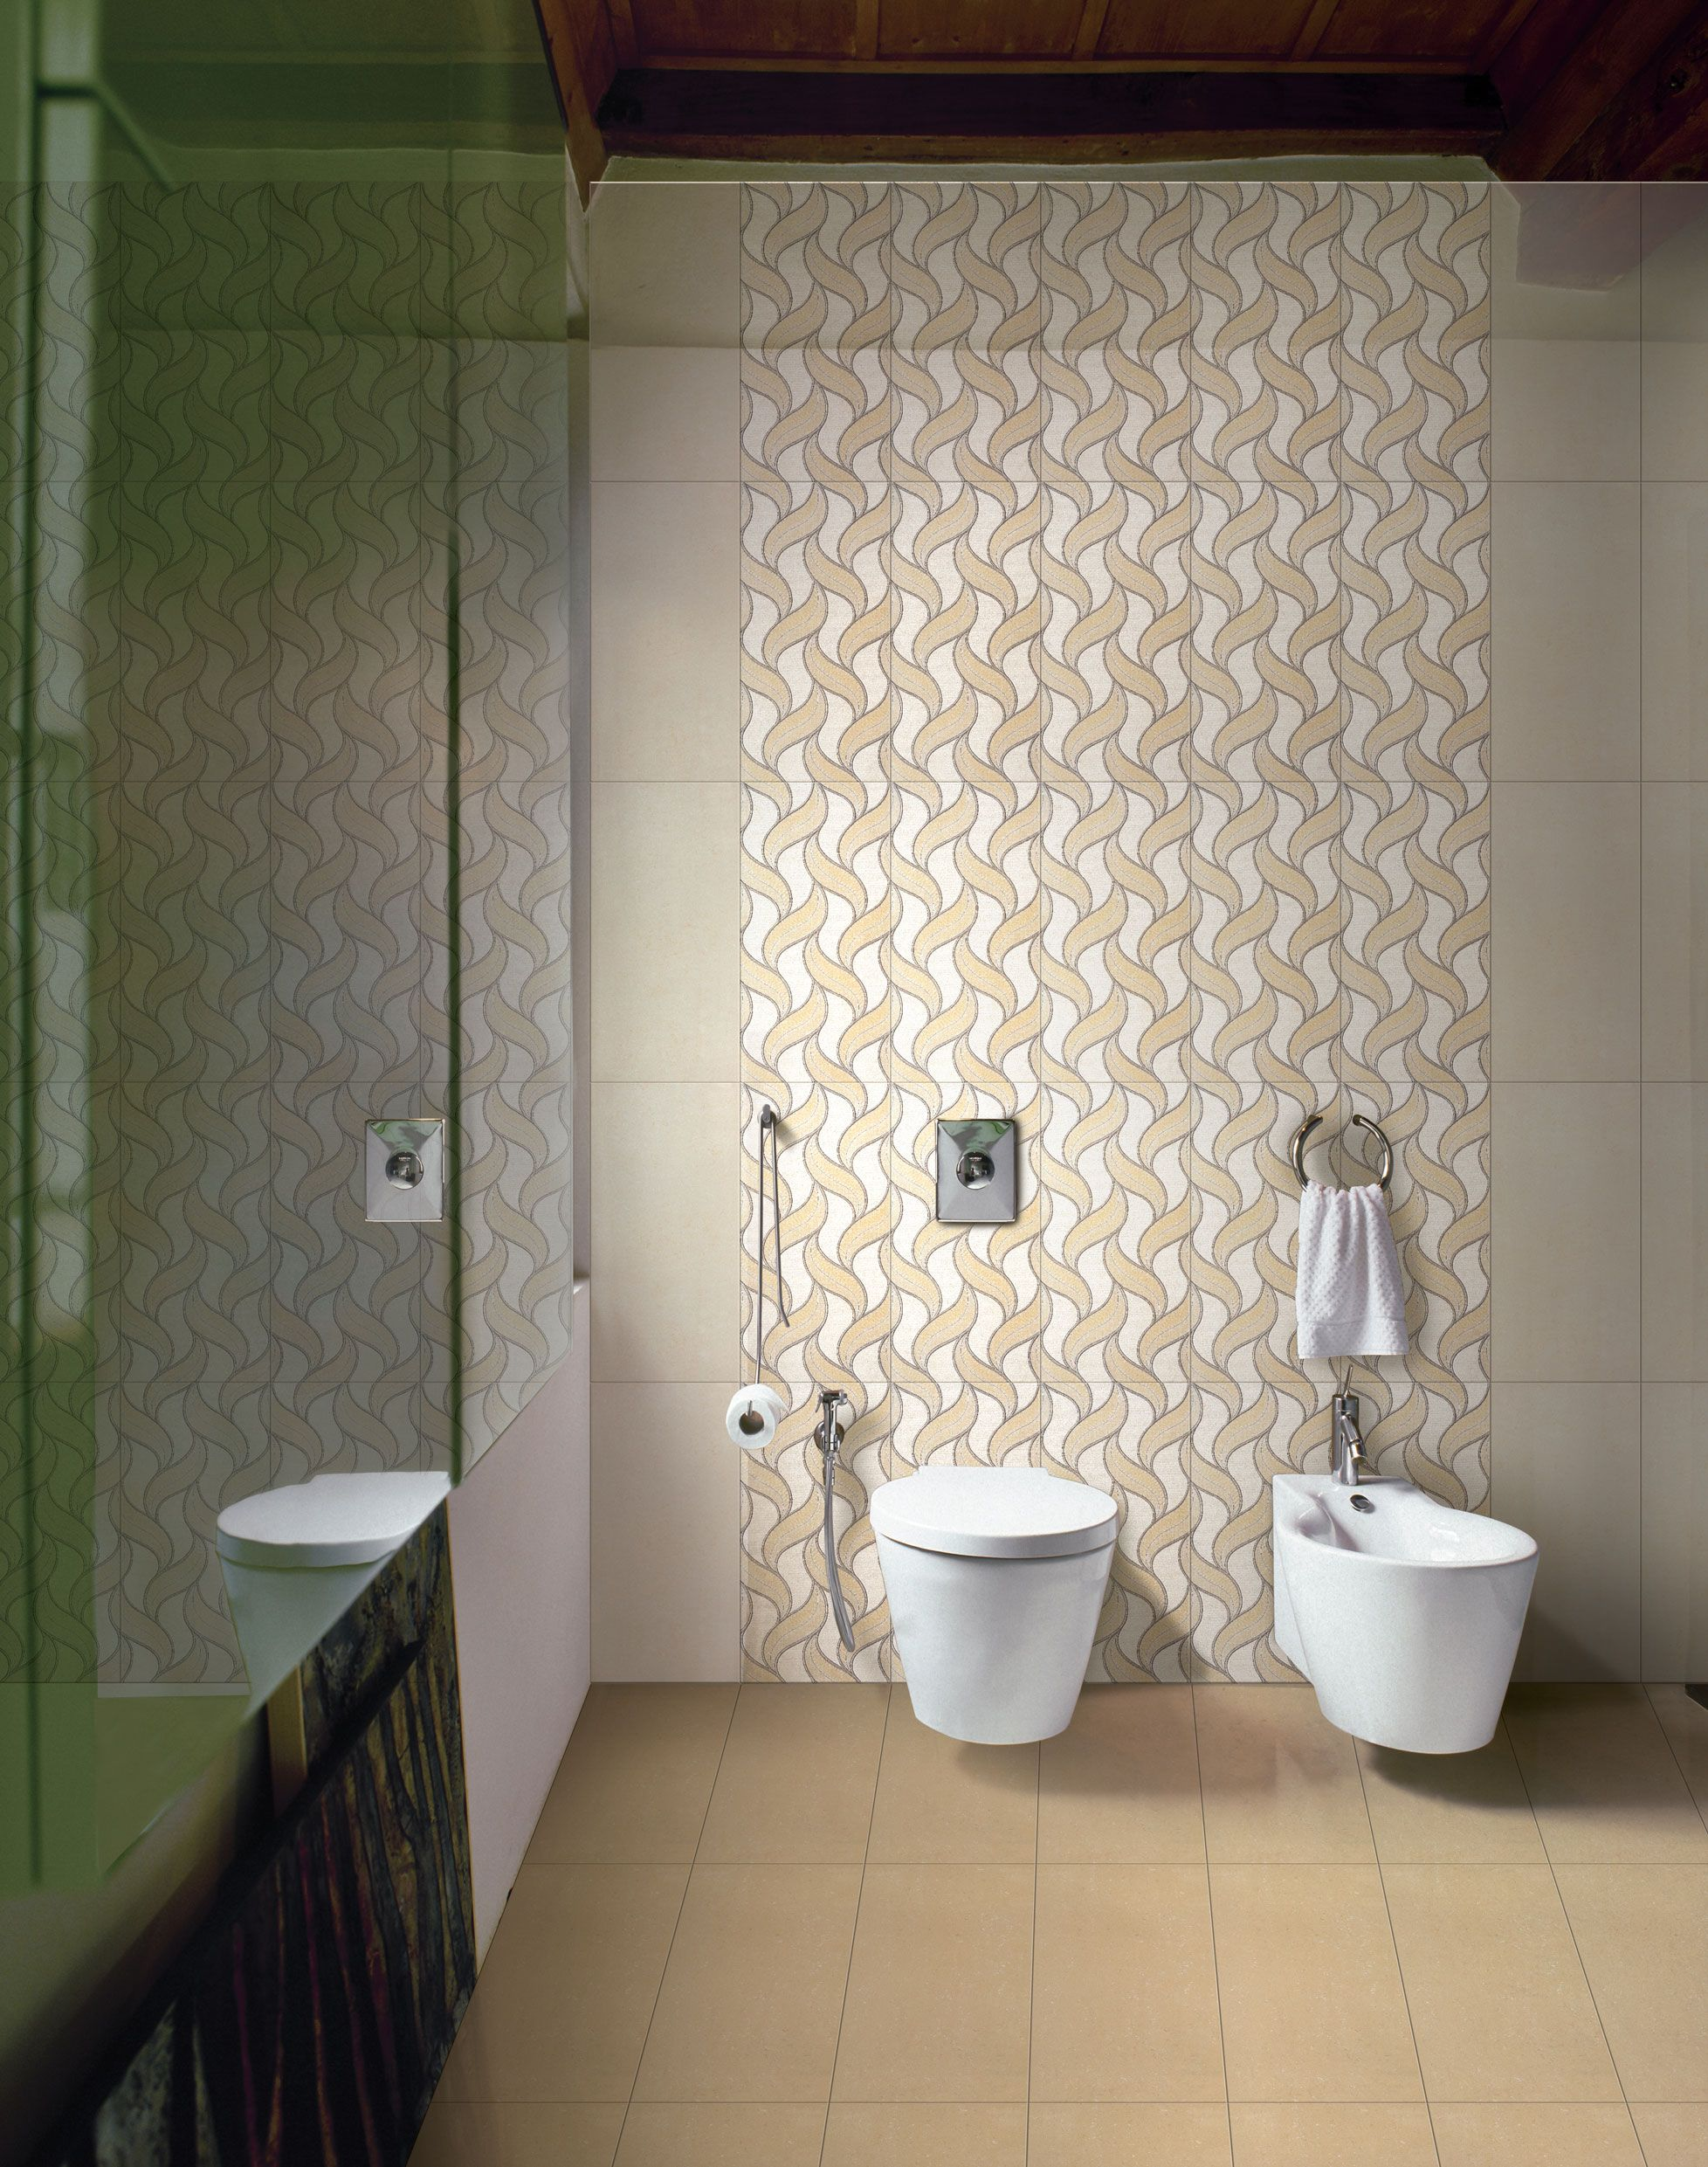 buy designer floor wall tiles for bathroom bedroom kitchen living - Living Room Wall Tiles Design